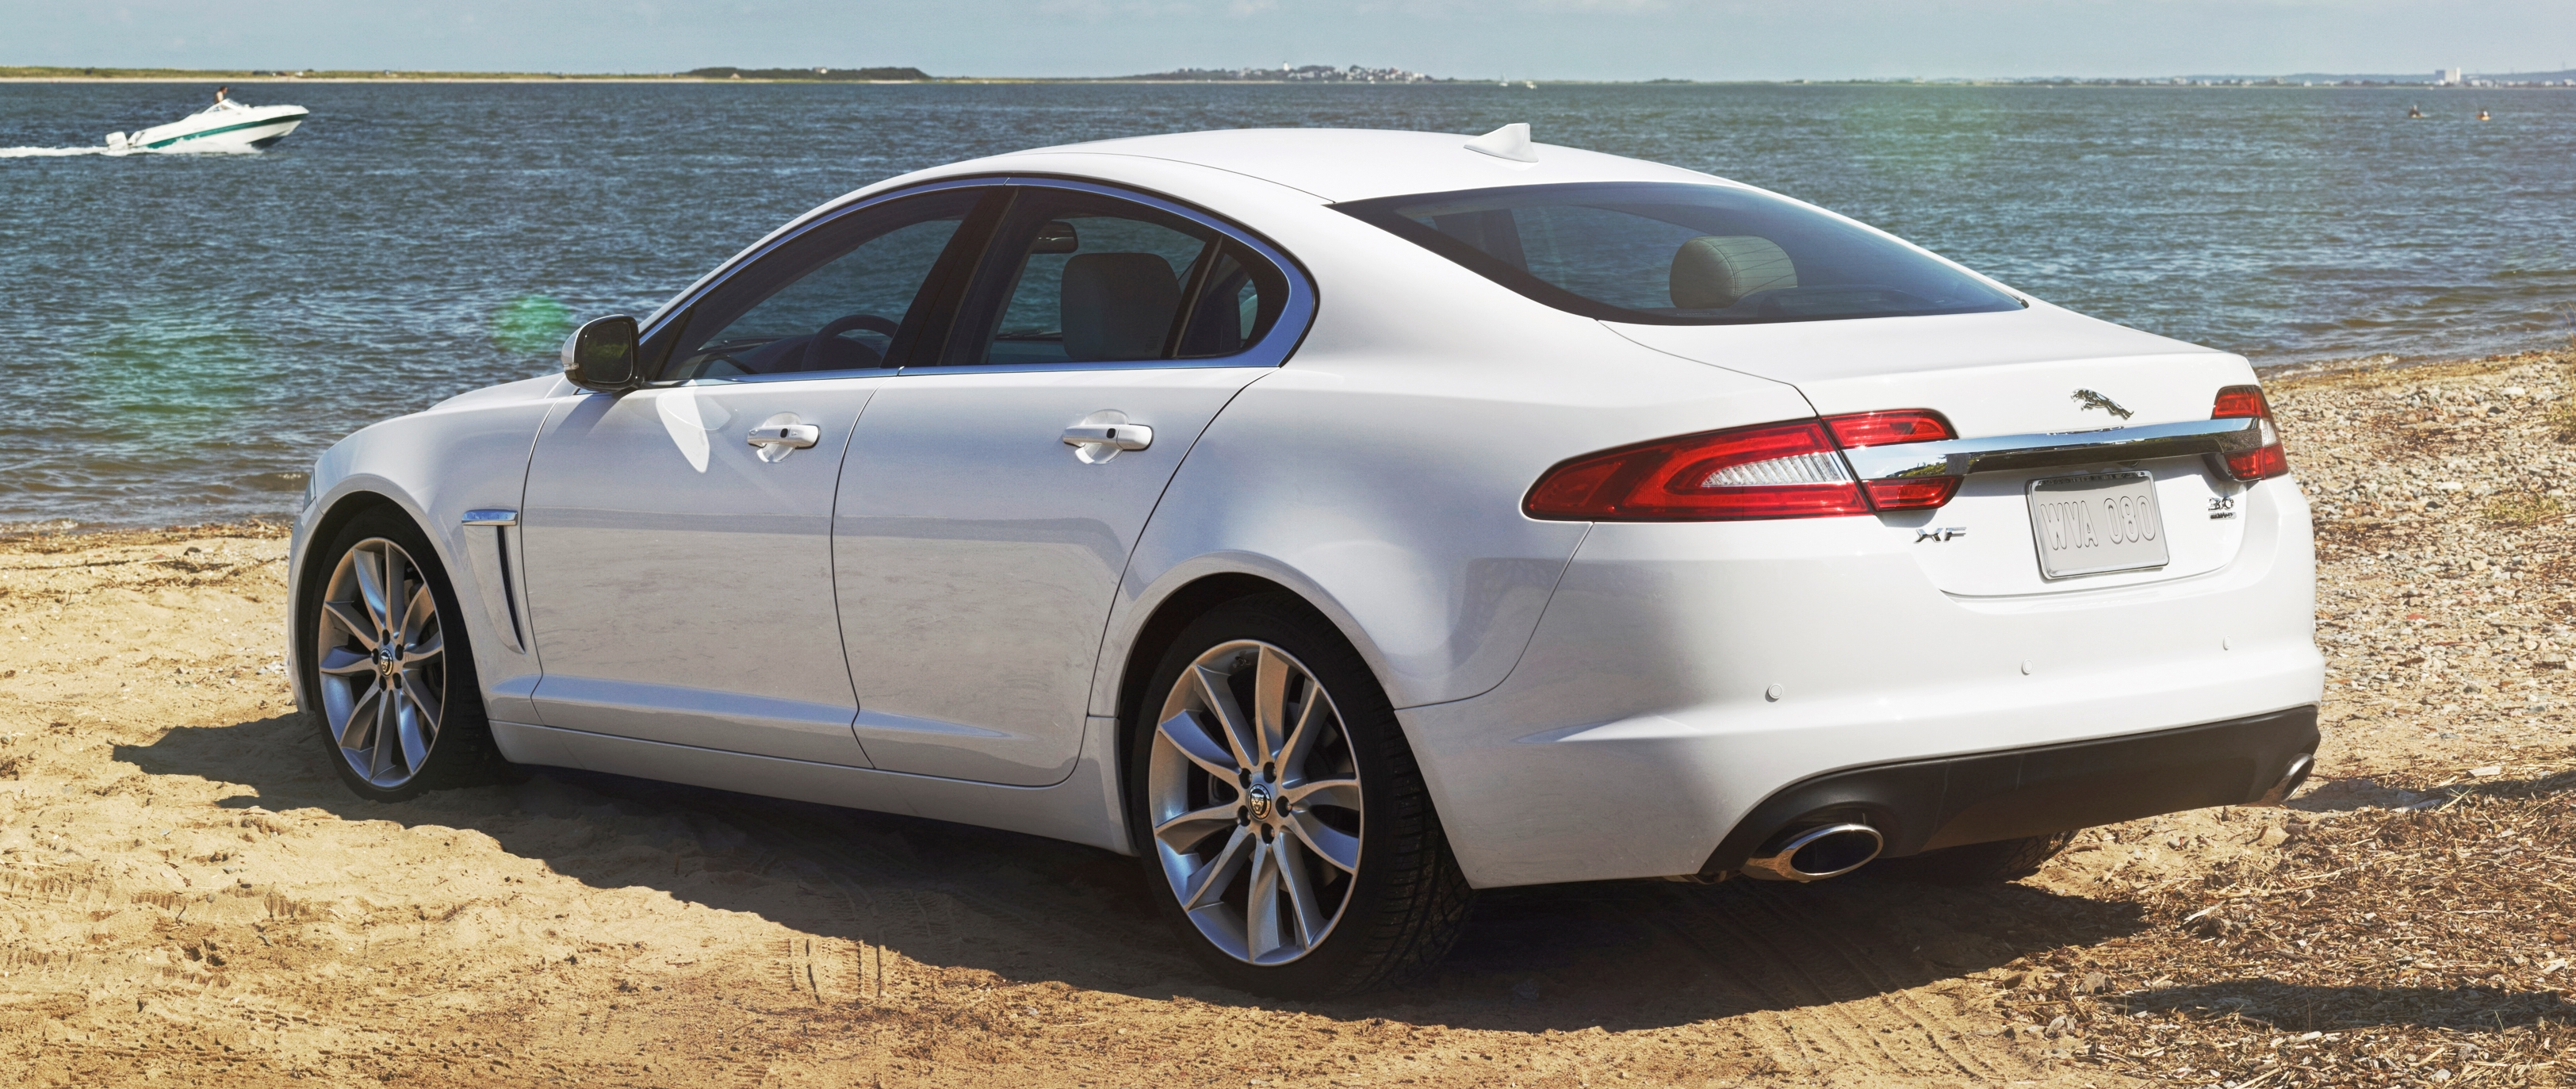 ratings reviews with sale images xf jaguar news amazing msrp for